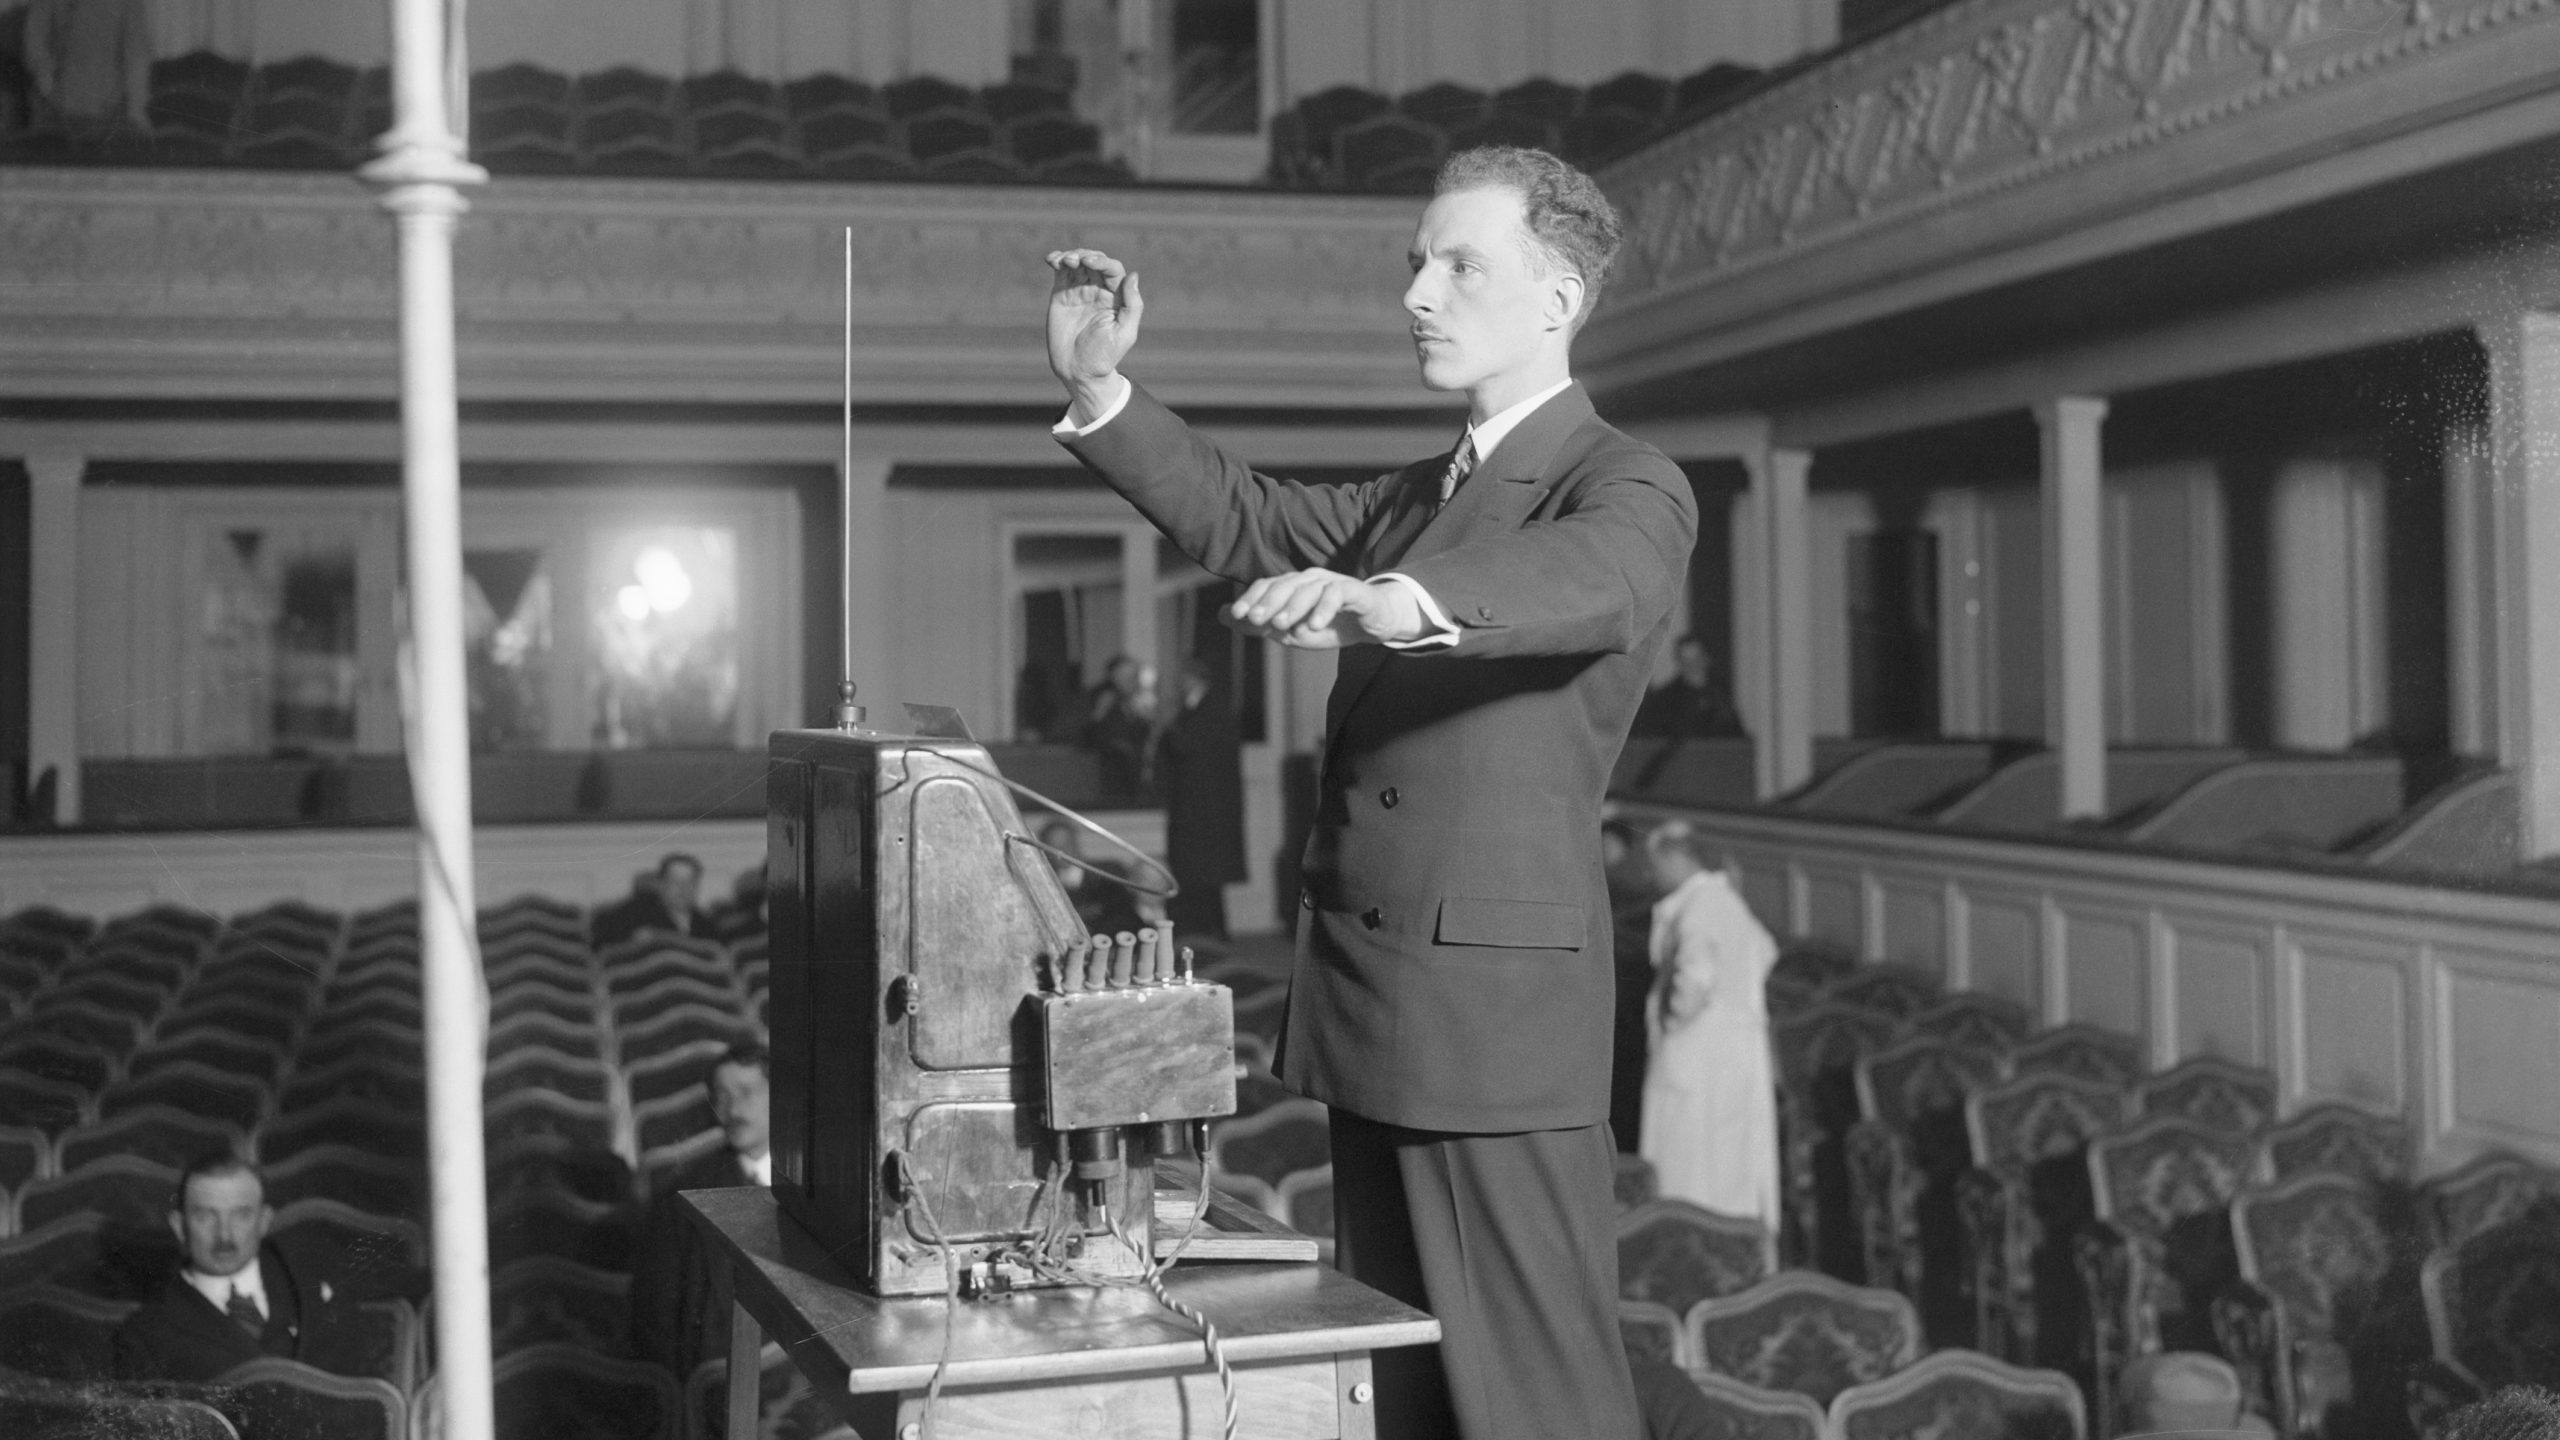 Lev Theremin